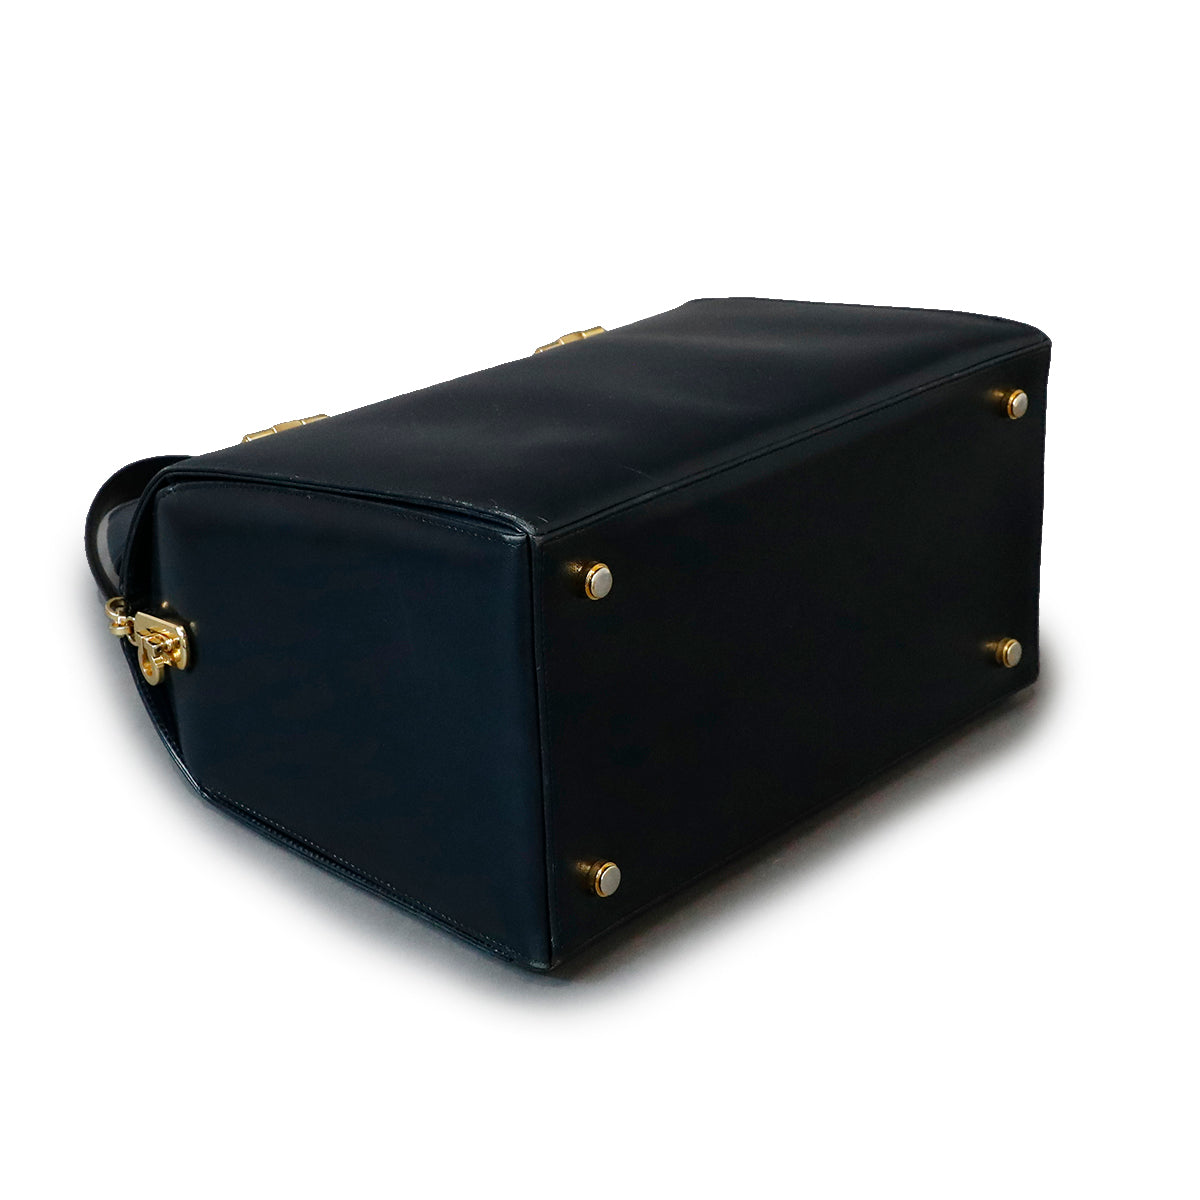 Ferragamo Black & Gold Mini Duffle Bag